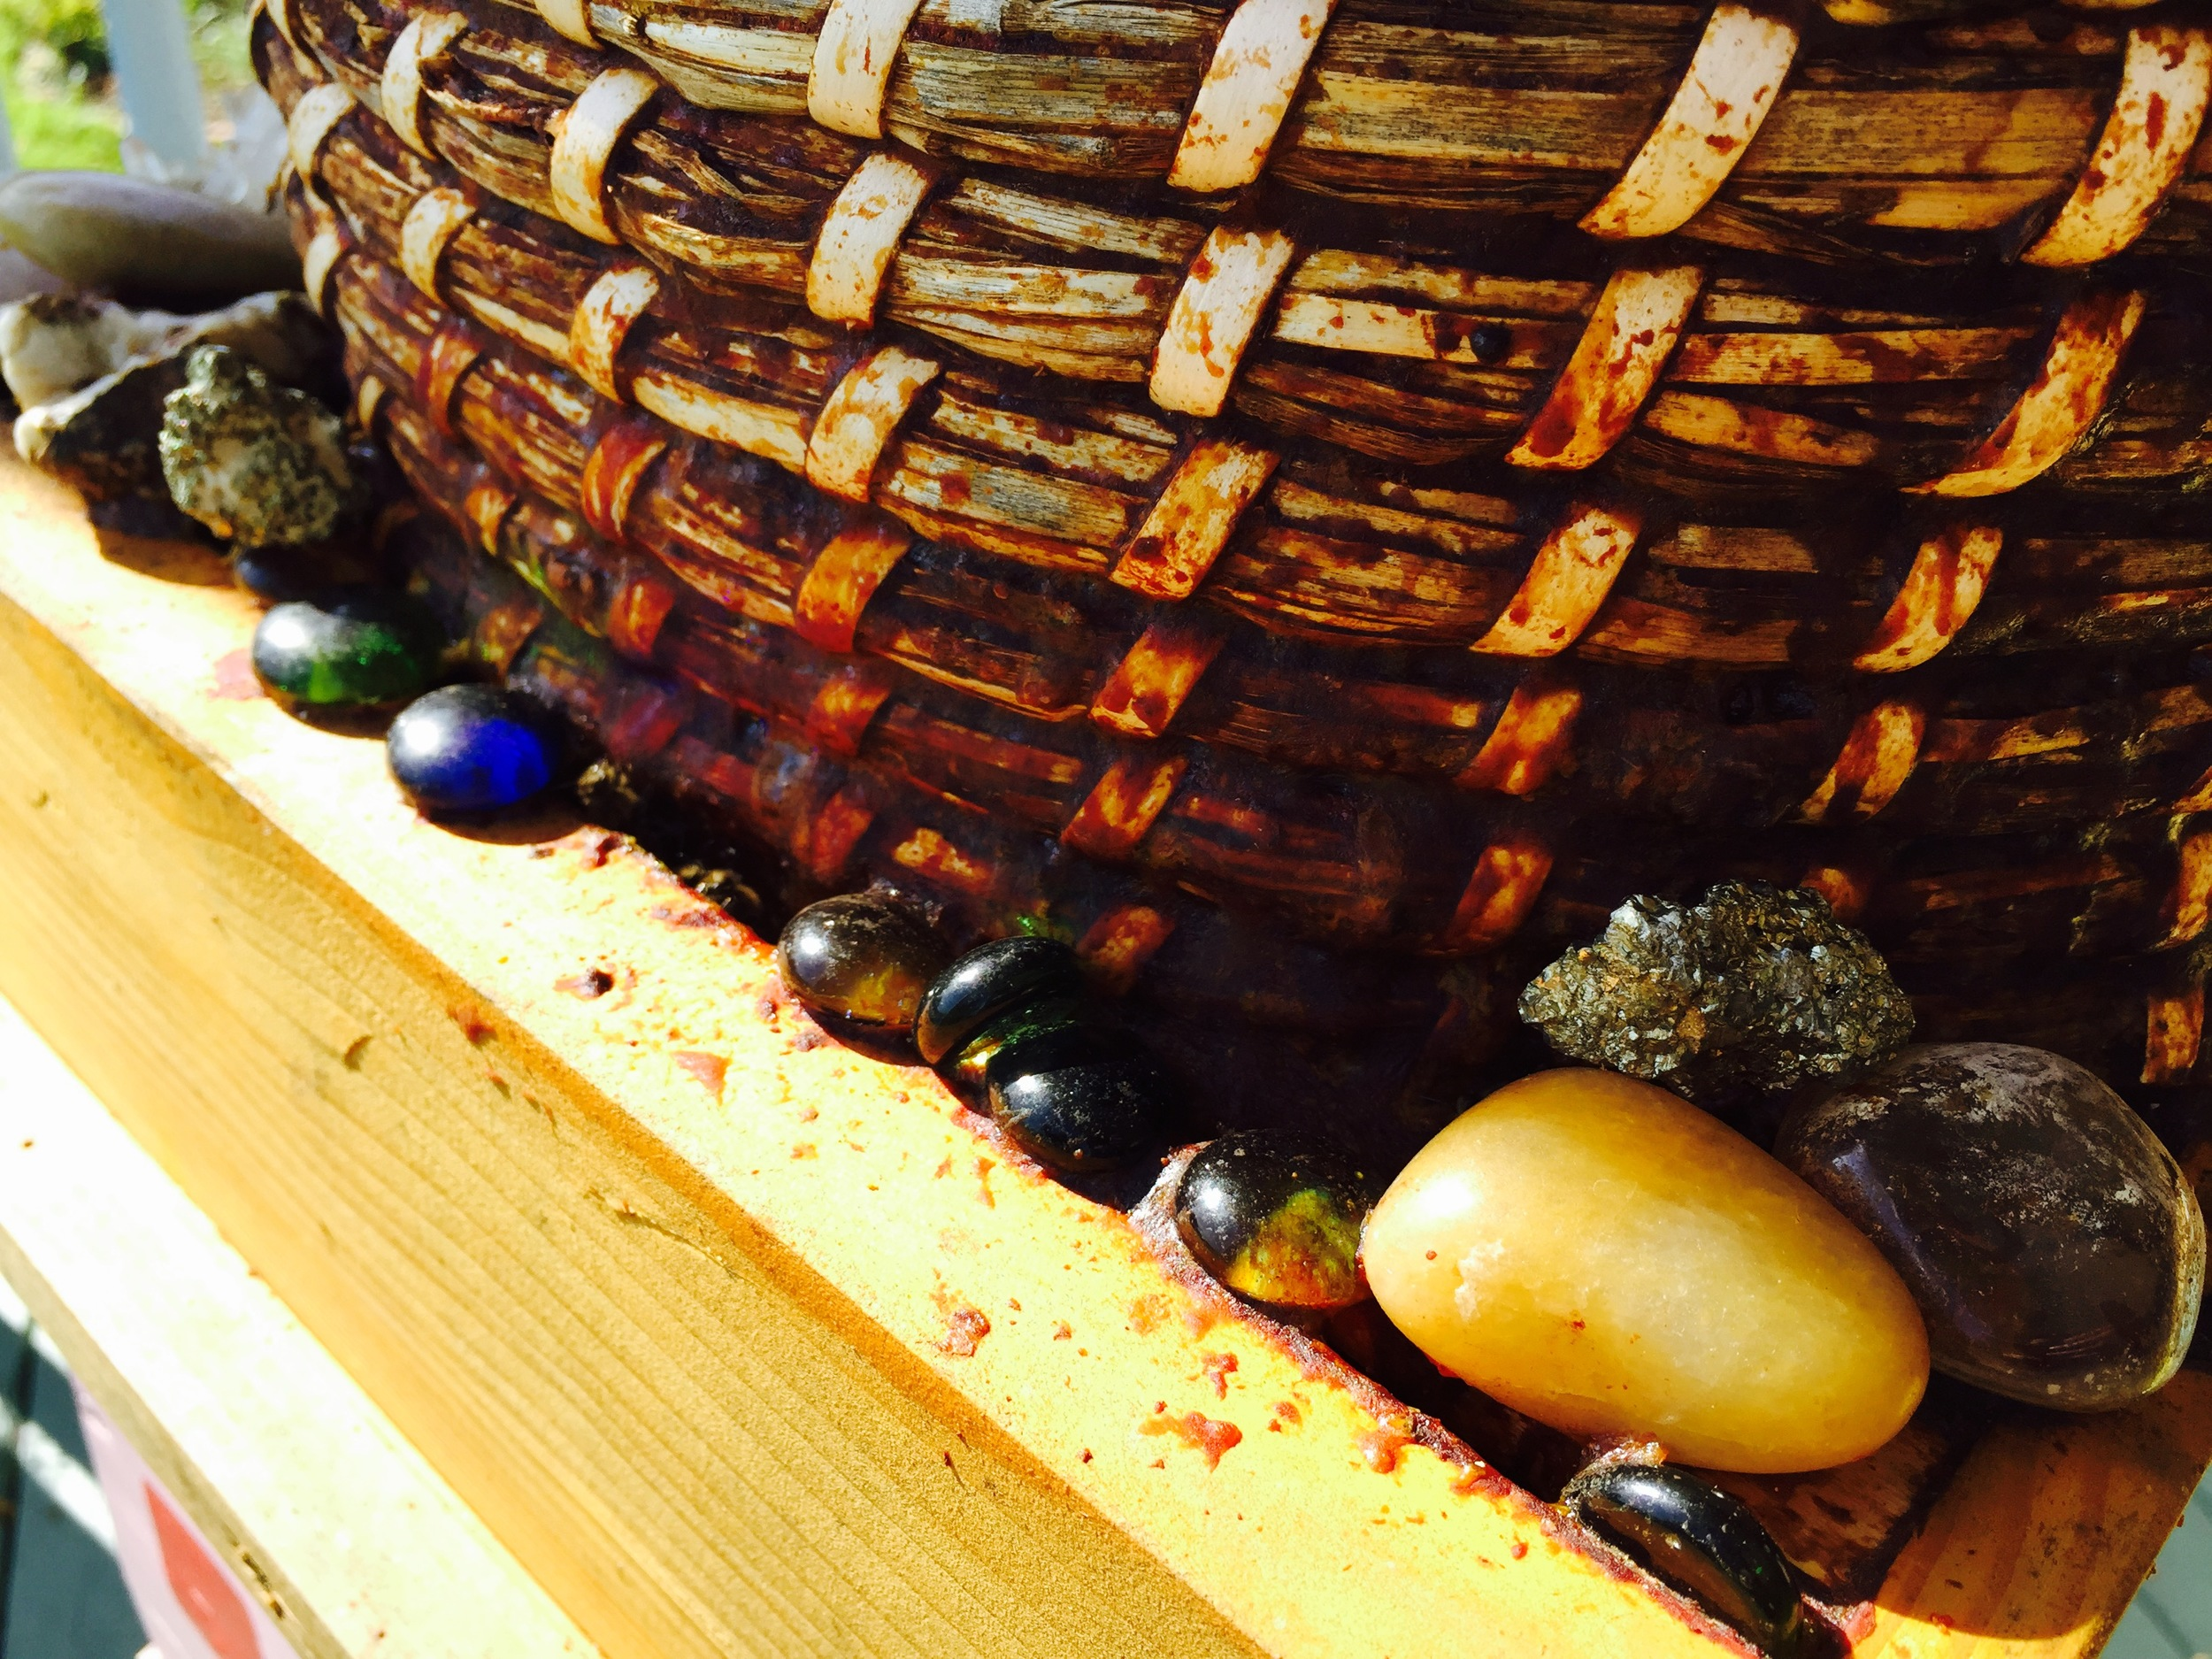 Rocks glued down by bees with the use of propolis